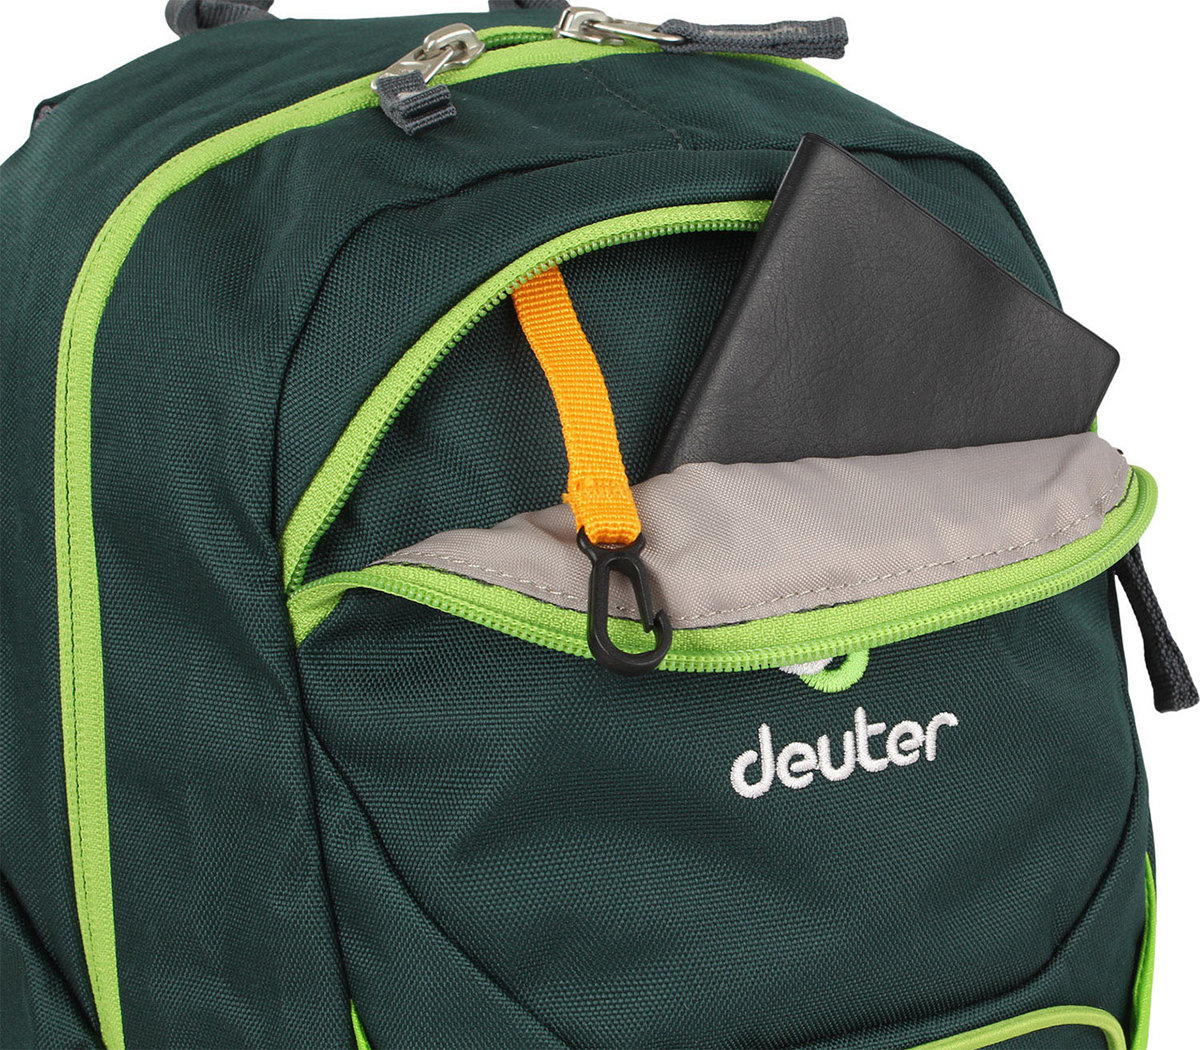 Велосипедный рюкзак Deuter GO-GO forest-kiwi Deuter GO-GO forest-kiwi front pocket 3820016 2225